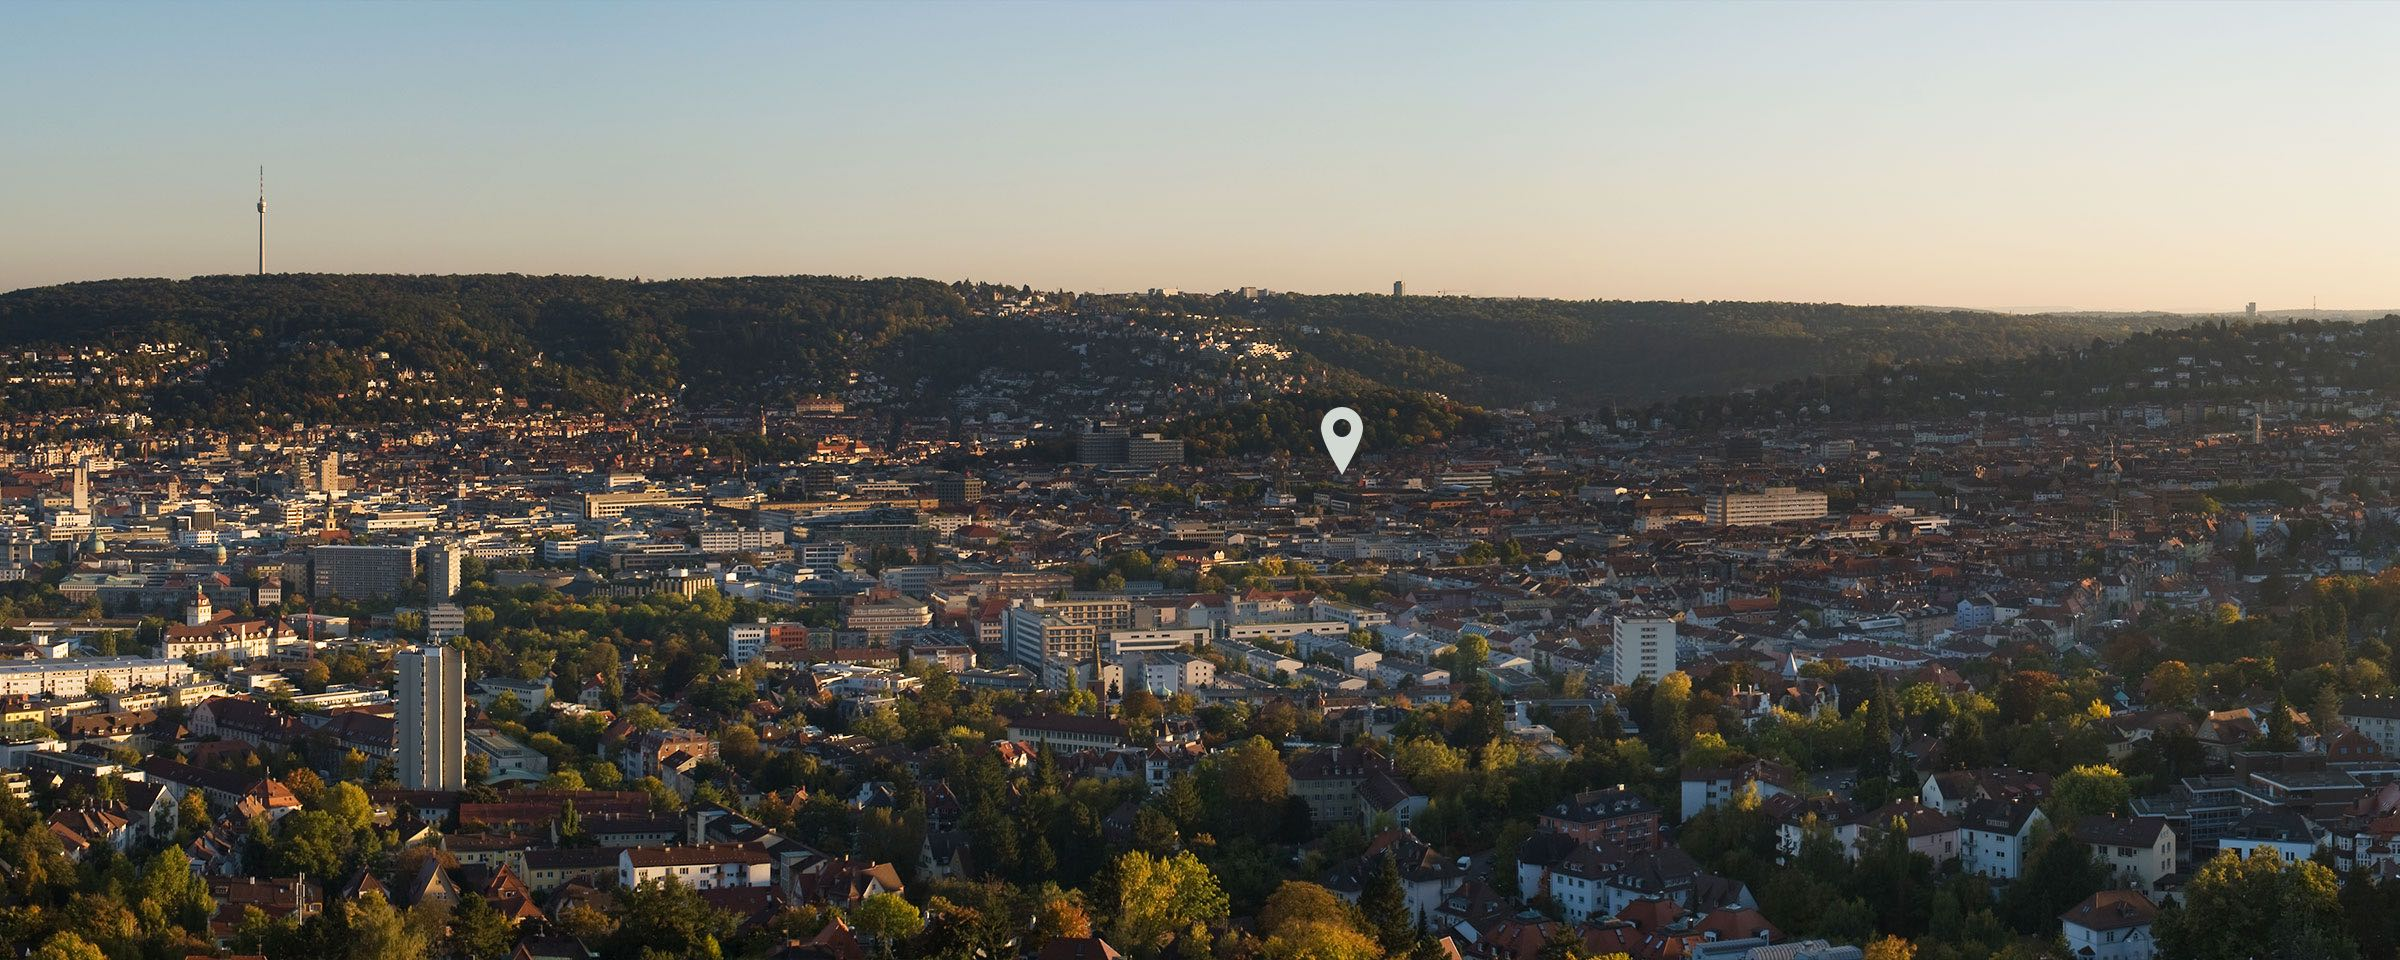 View of Stuttgart with a pin on the location of Intuity